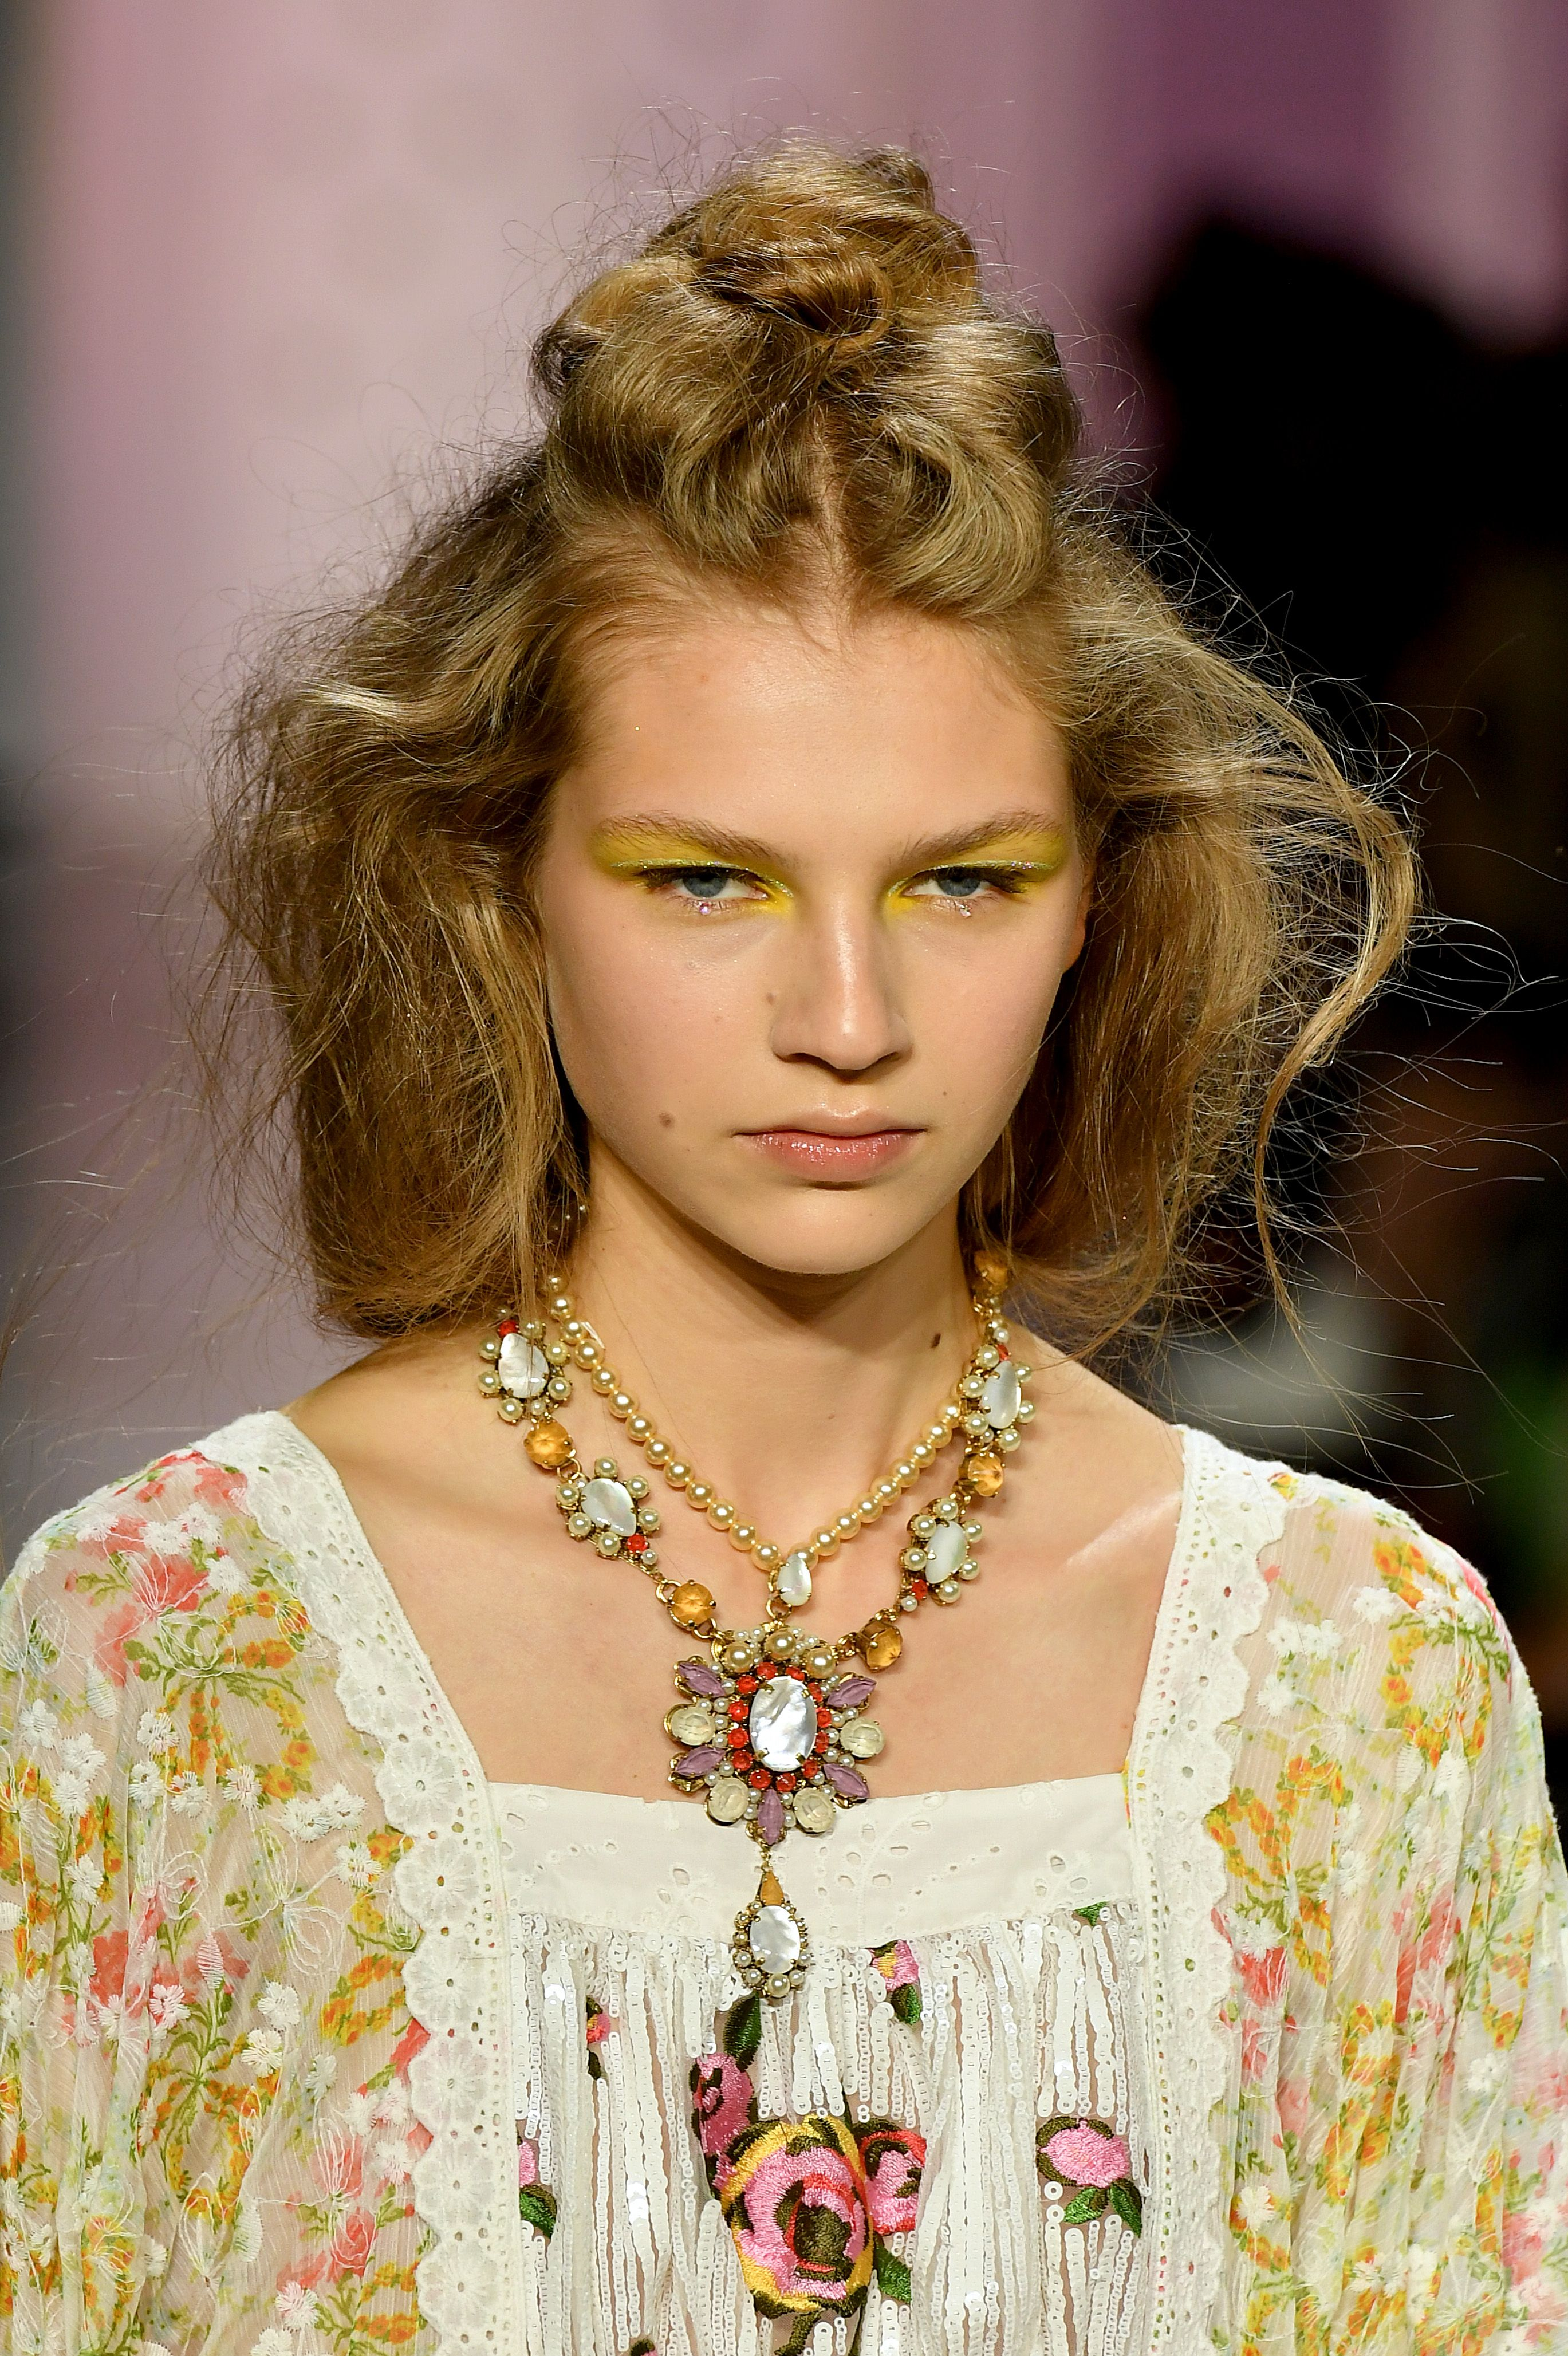 50 Hairstyles To Try In 2020 Popular New Hair Looks